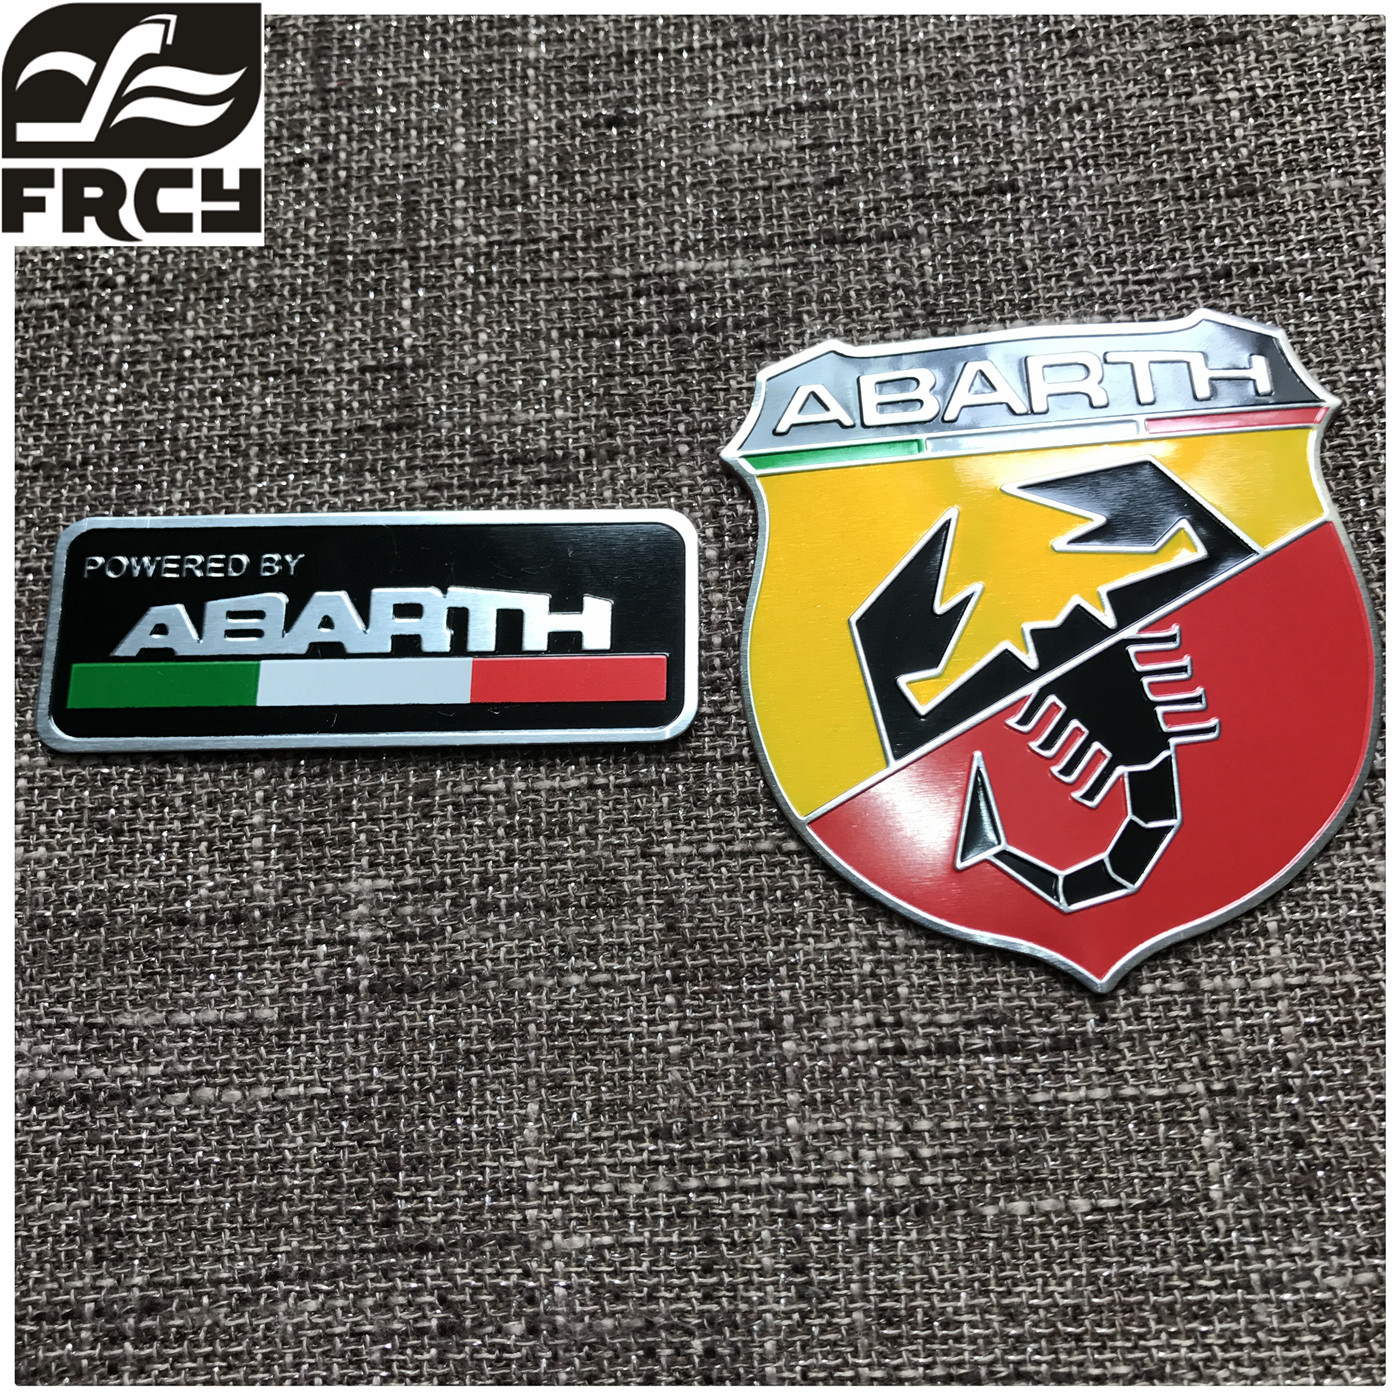 2017 3d Car Abarth Metal Adhesive Badge Emblem Logo Decal Sticker Scorpion For All Fiat Punto 124/125/125/500 Styling customized badge holder lanyard company logo print personalized lanyard printing badge accessories